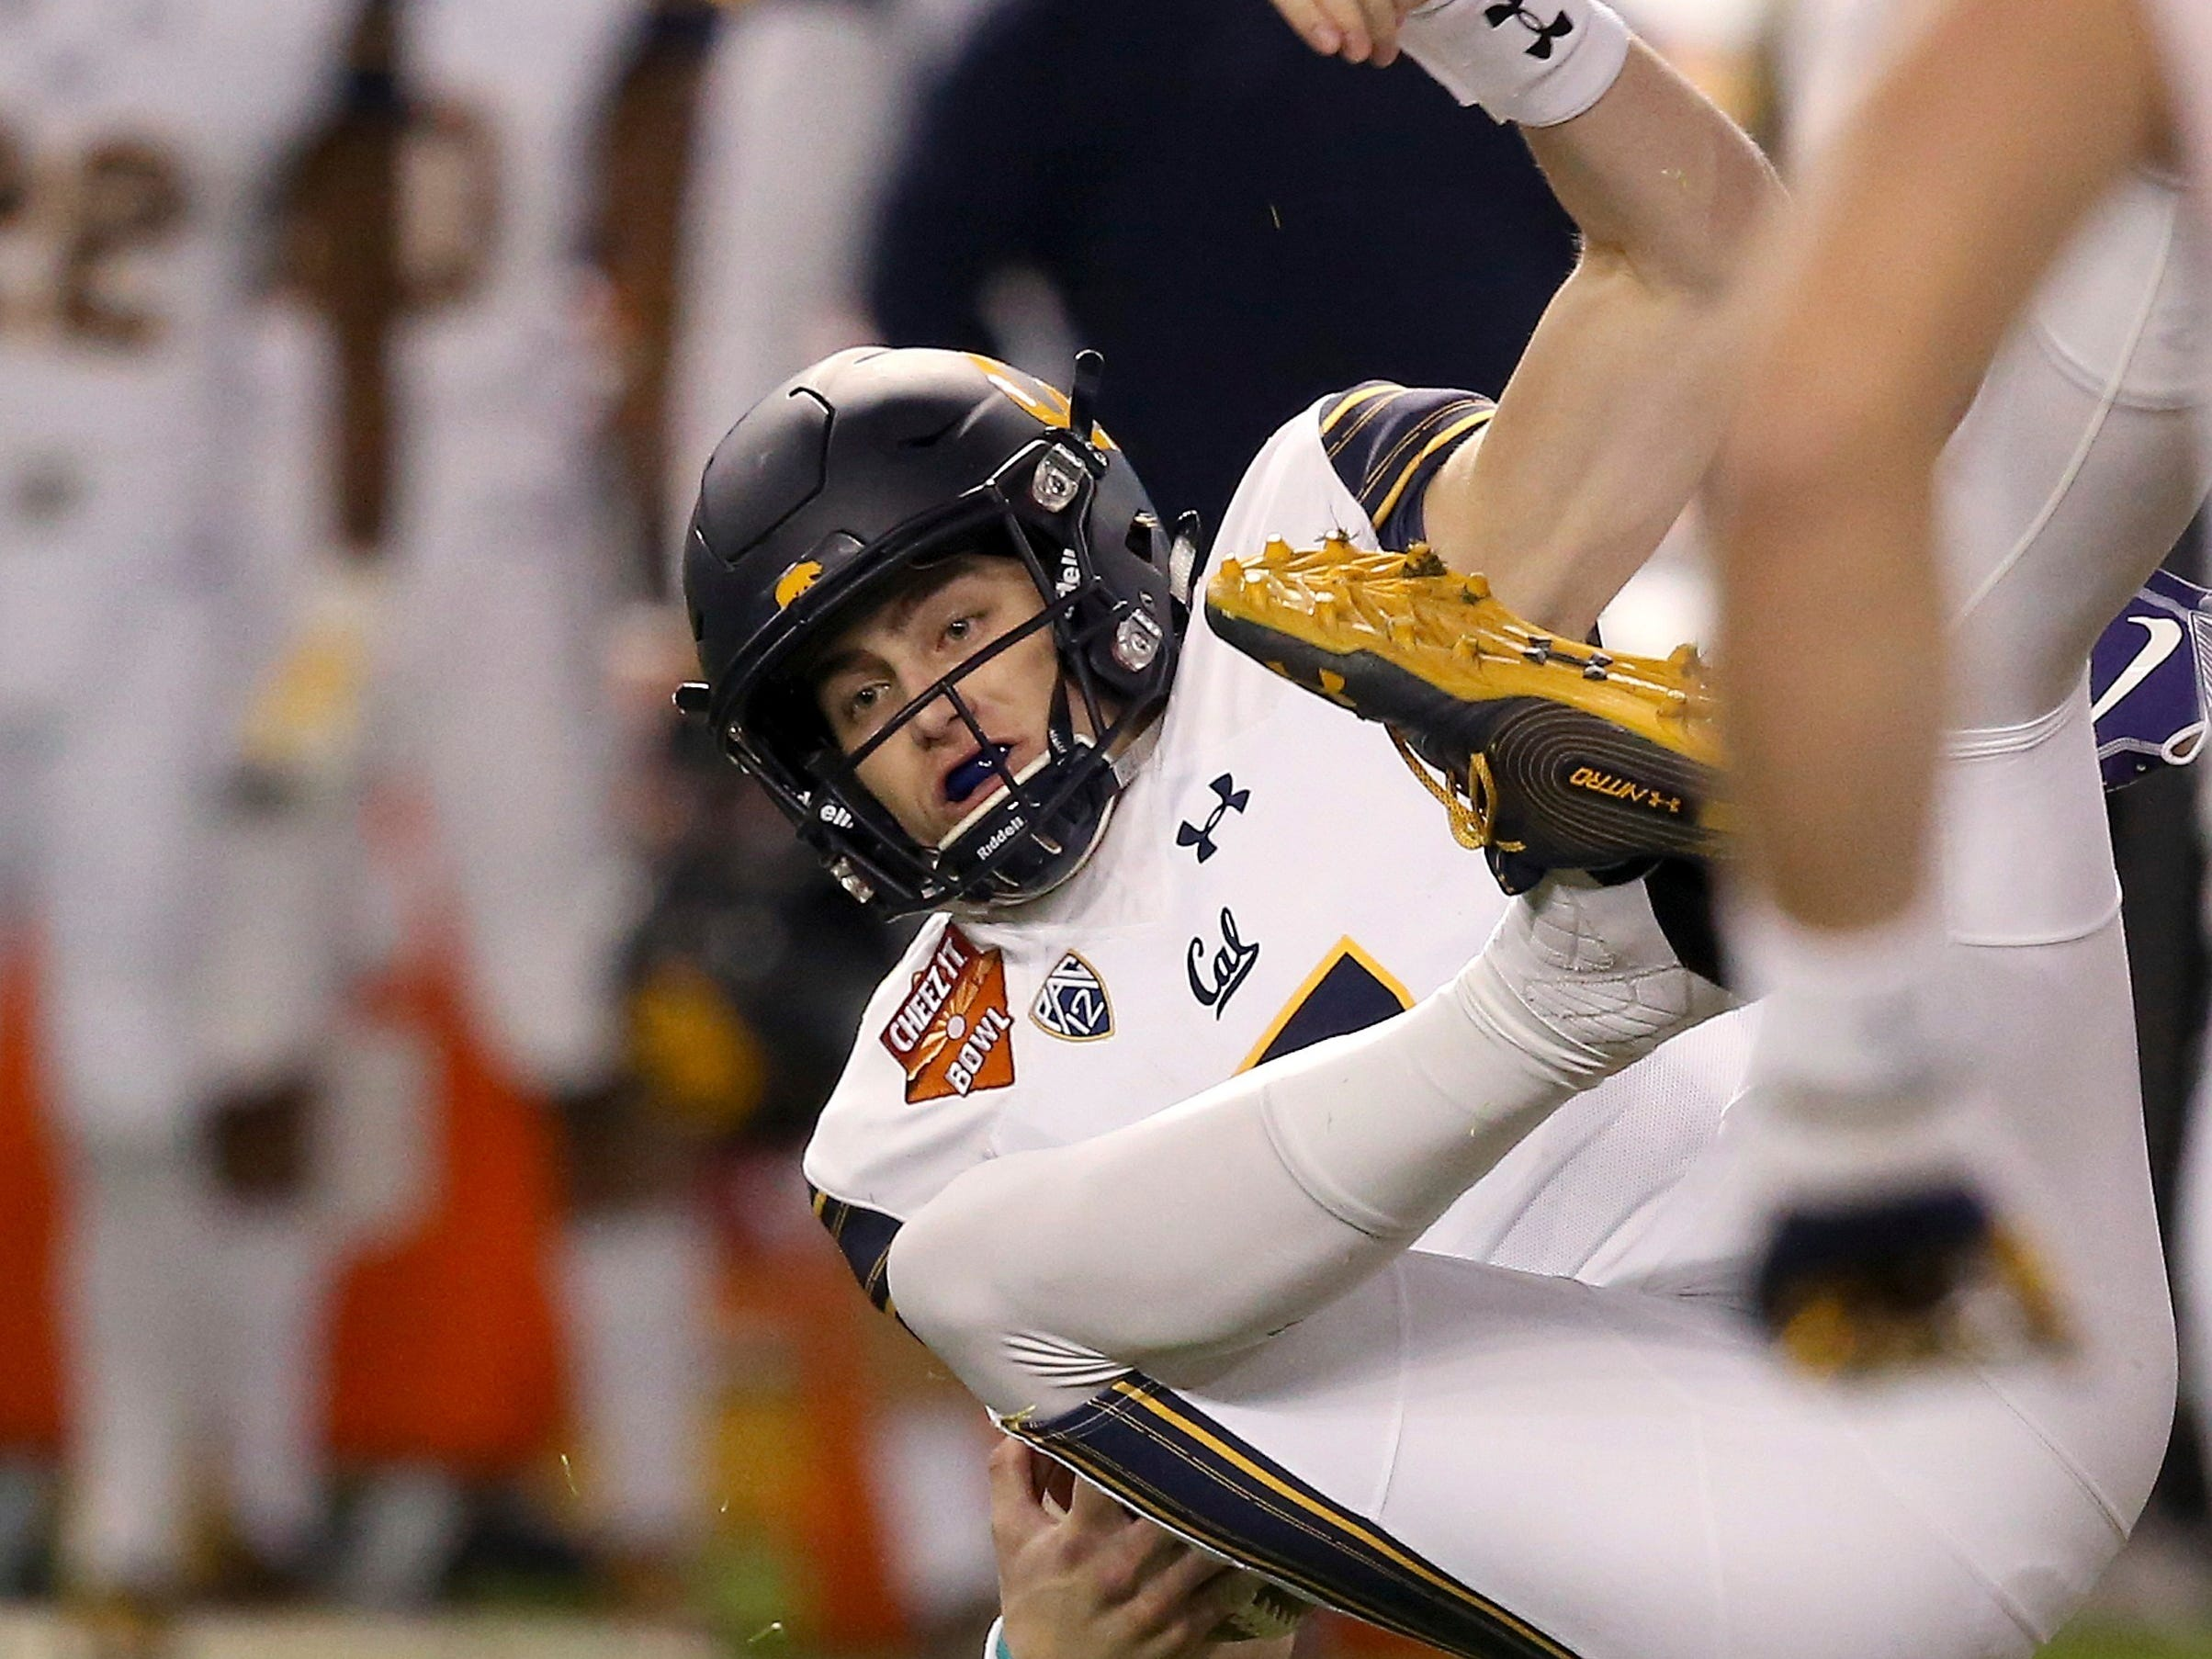 California quarterback Chase Garbers, top, gets upended by TCU safety Vernon Scott (26) during the first half of the Cheez-It Bowl NCAA college football game Wednesday, Dec. 26, 2018, in Phoenix.